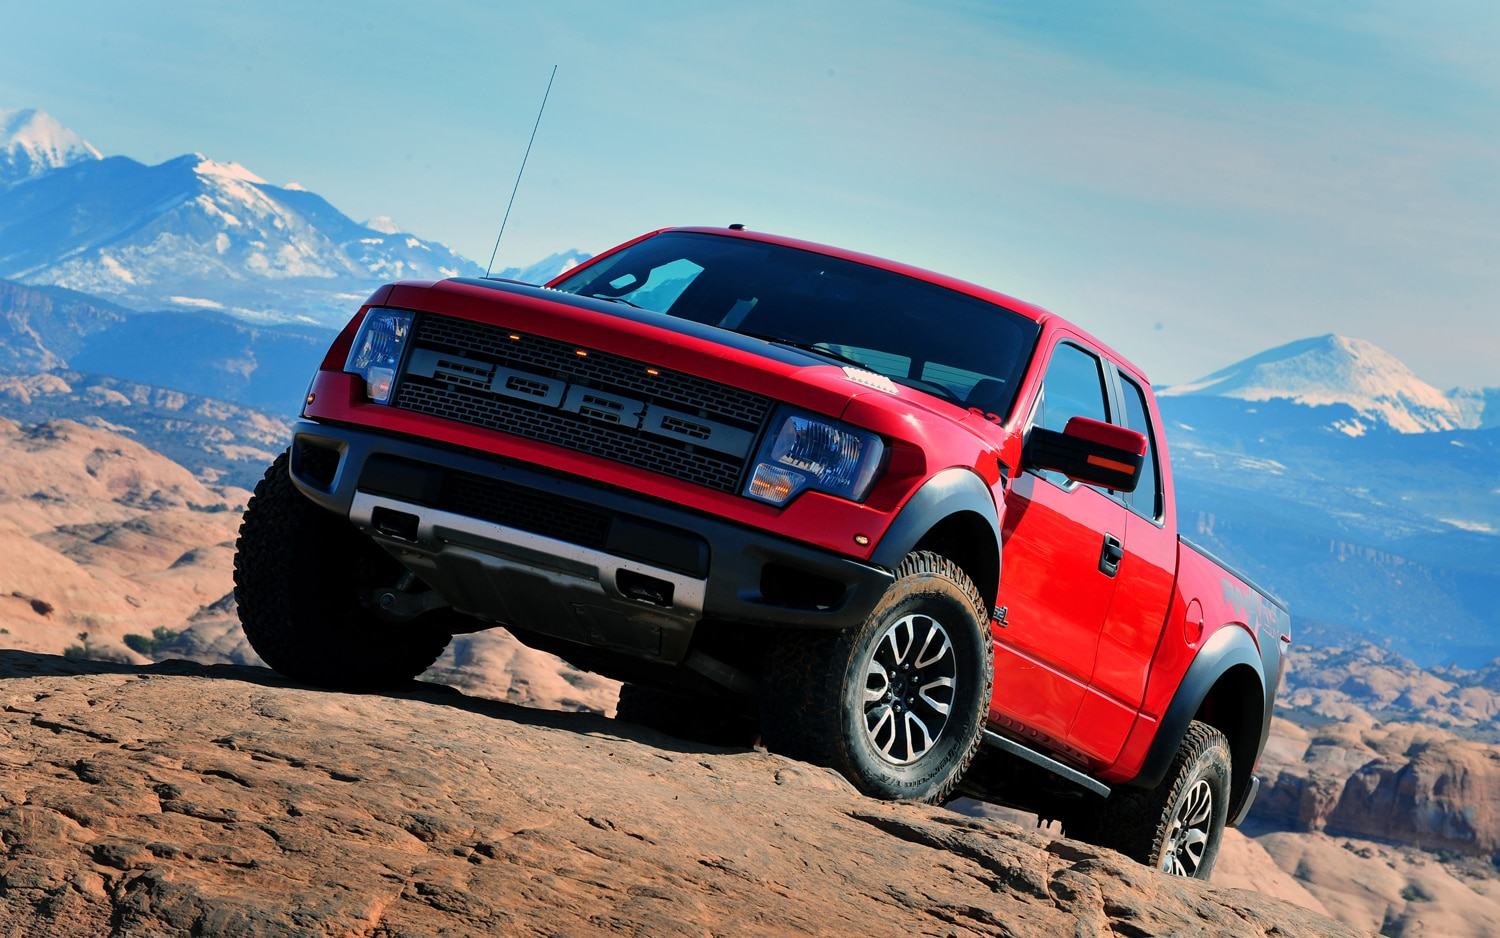 2012 Ford F150 SVT Raptor Front Three Quarter View1